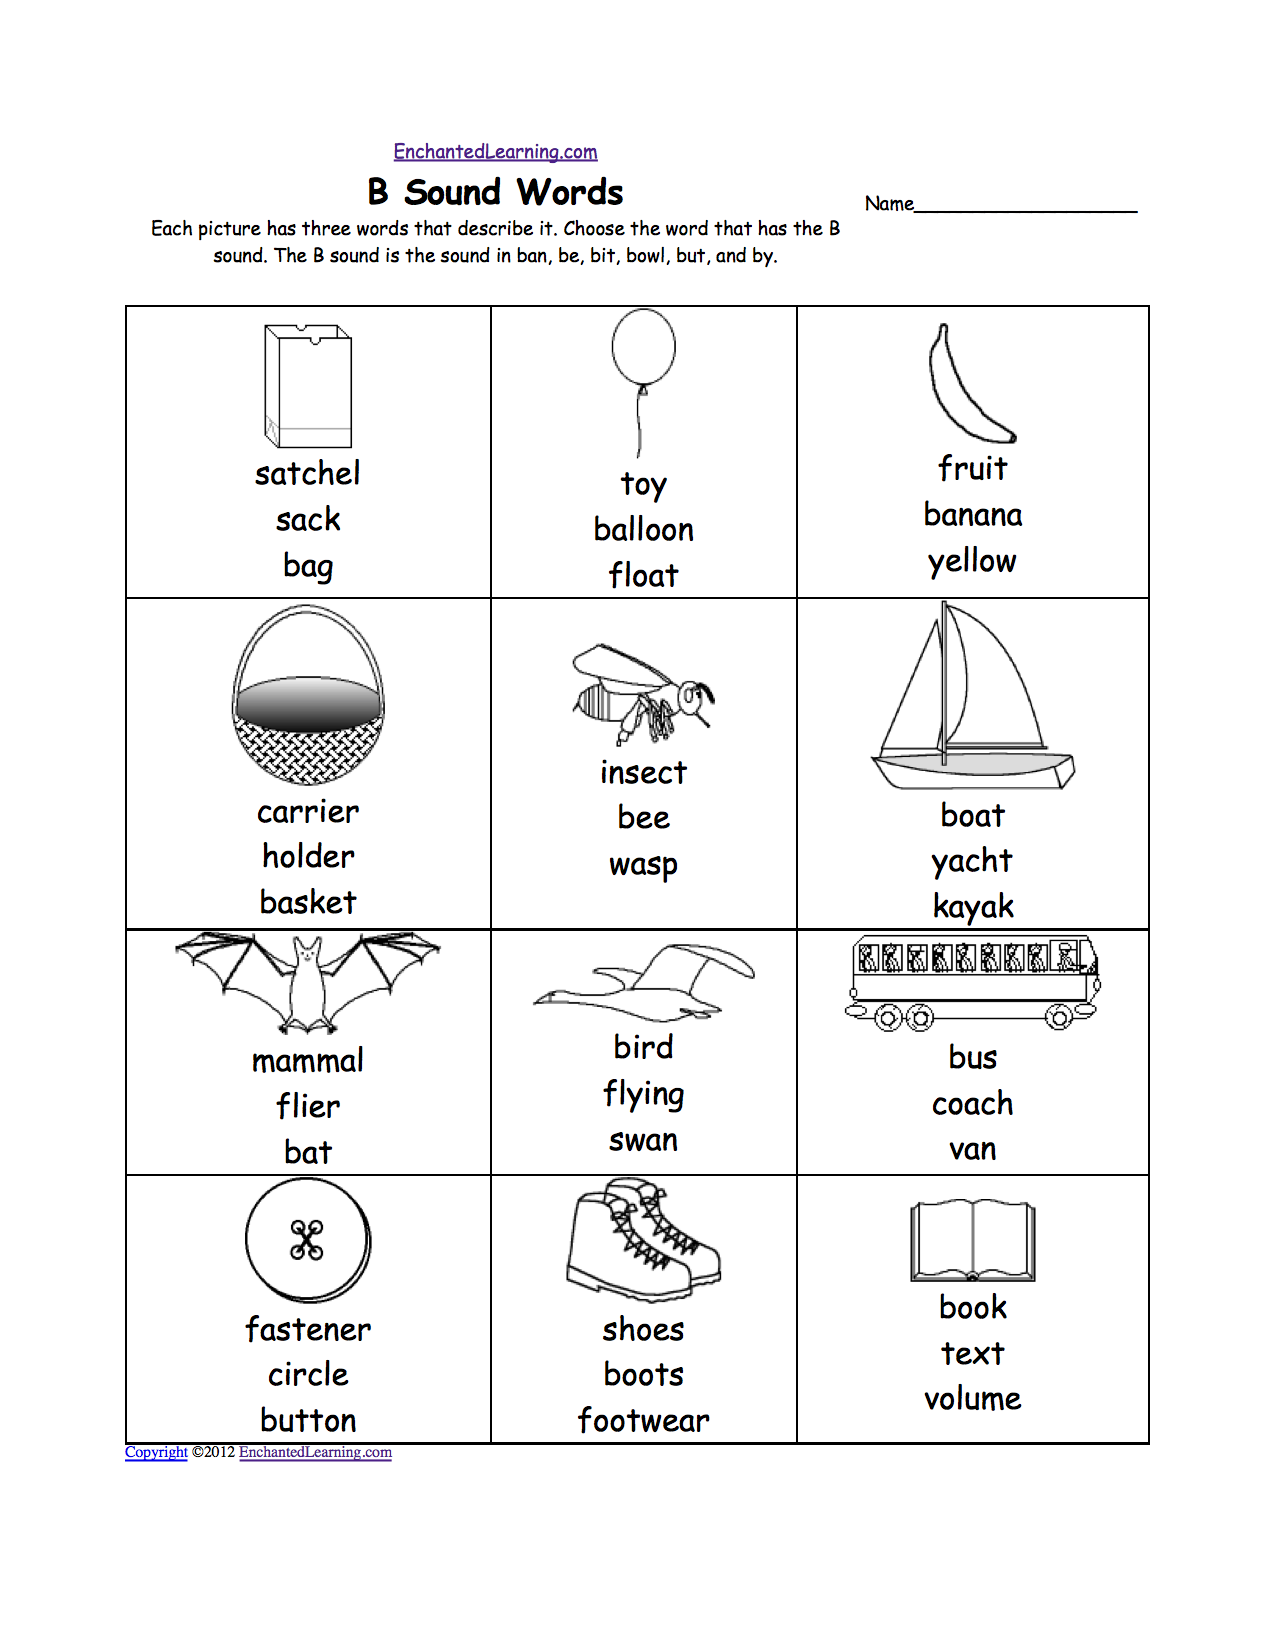 Weirdmailus  Marvellous Phonics Worksheets Multiple Choice Worksheets To Print  With Foxy Quotbquot Sound Phonics Worksheet Multiple Choice Each Picture Has Three Words That Describe It Choose The Word That Has A Quotbquot Sound The Quotbquot Sound Is The Sound  With Delightful Prek Free Worksheets Also Free Printable Math Addition Worksheets For Kindergarten In Addition The Brain Worksheet And Semicolon Practice Worksheet As Well As Nutrition Worksheets For Highschool Students Additionally Free Comprehension Worksheets For Grade  From Enchantedlearningcom With Weirdmailus  Foxy Phonics Worksheets Multiple Choice Worksheets To Print  With Delightful Quotbquot Sound Phonics Worksheet Multiple Choice Each Picture Has Three Words That Describe It Choose The Word That Has A Quotbquot Sound The Quotbquot Sound Is The Sound  And Marvellous Prek Free Worksheets Also Free Printable Math Addition Worksheets For Kindergarten In Addition The Brain Worksheet From Enchantedlearningcom